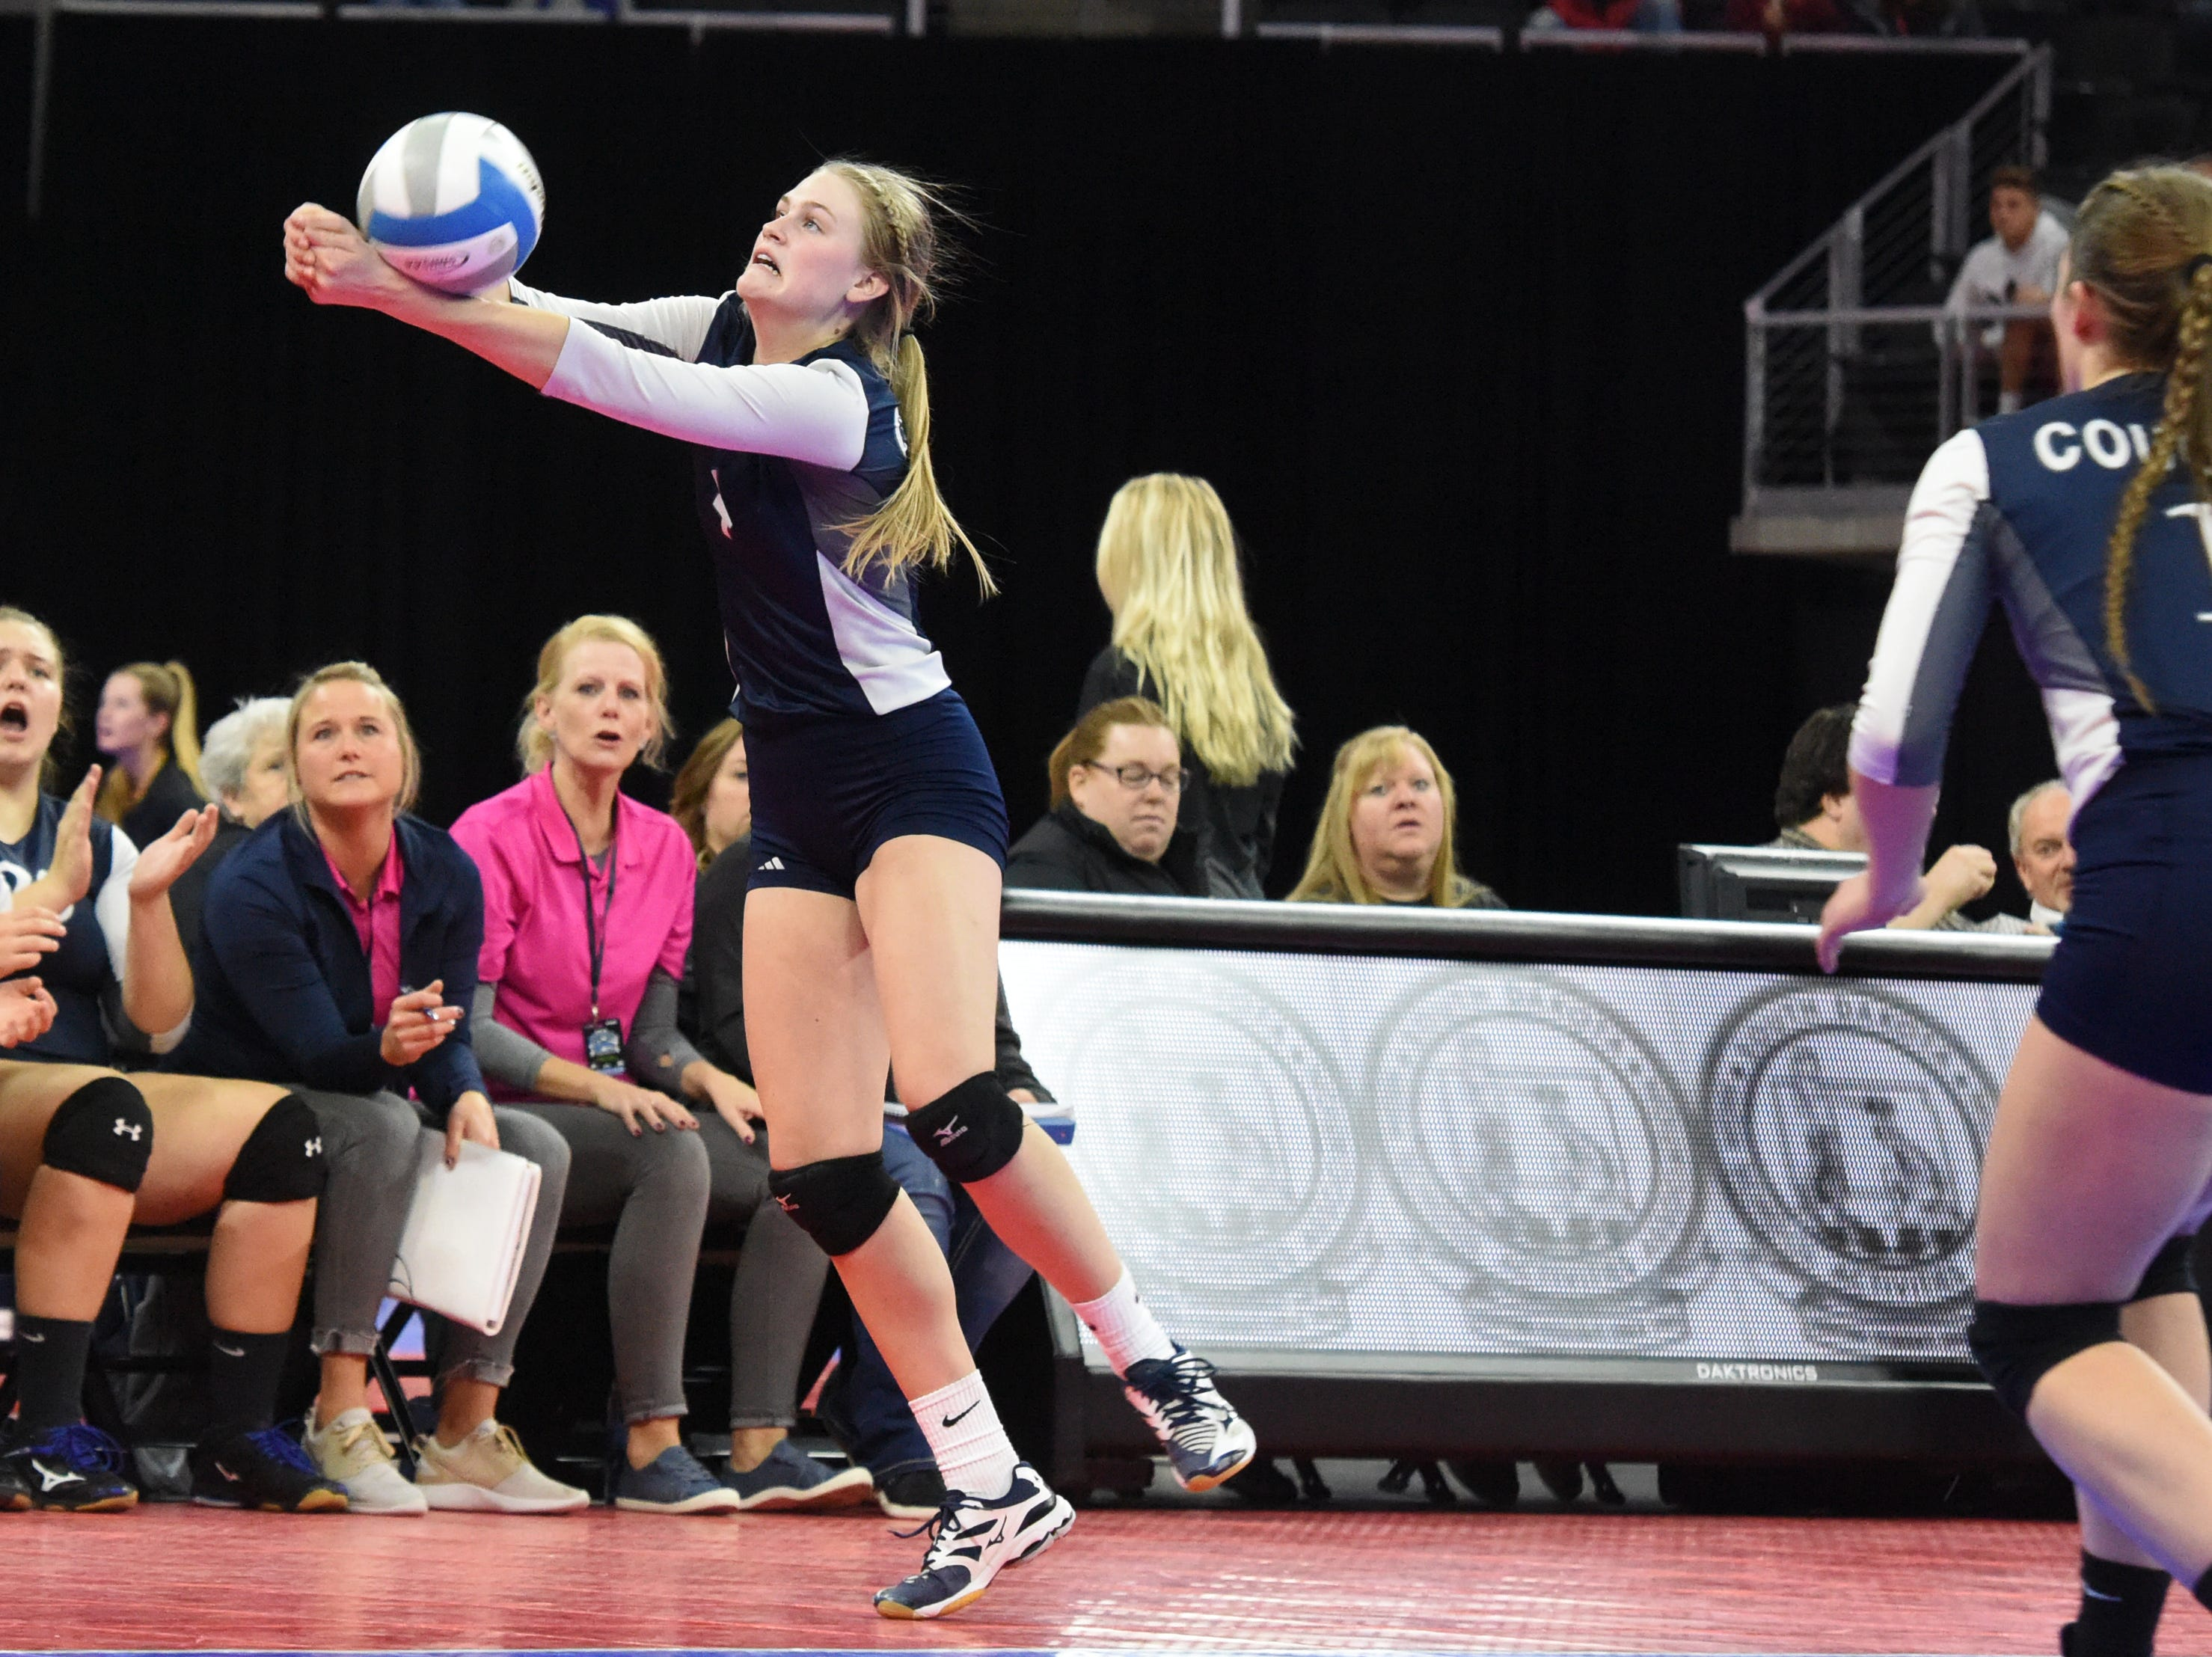 Burke's Taylee Indahl (4) bumps the ball during a match against Ethan, Friday, Nov. 16, 2018, at the Denny Sanford Premier Center in Sioux Falls, S.D.